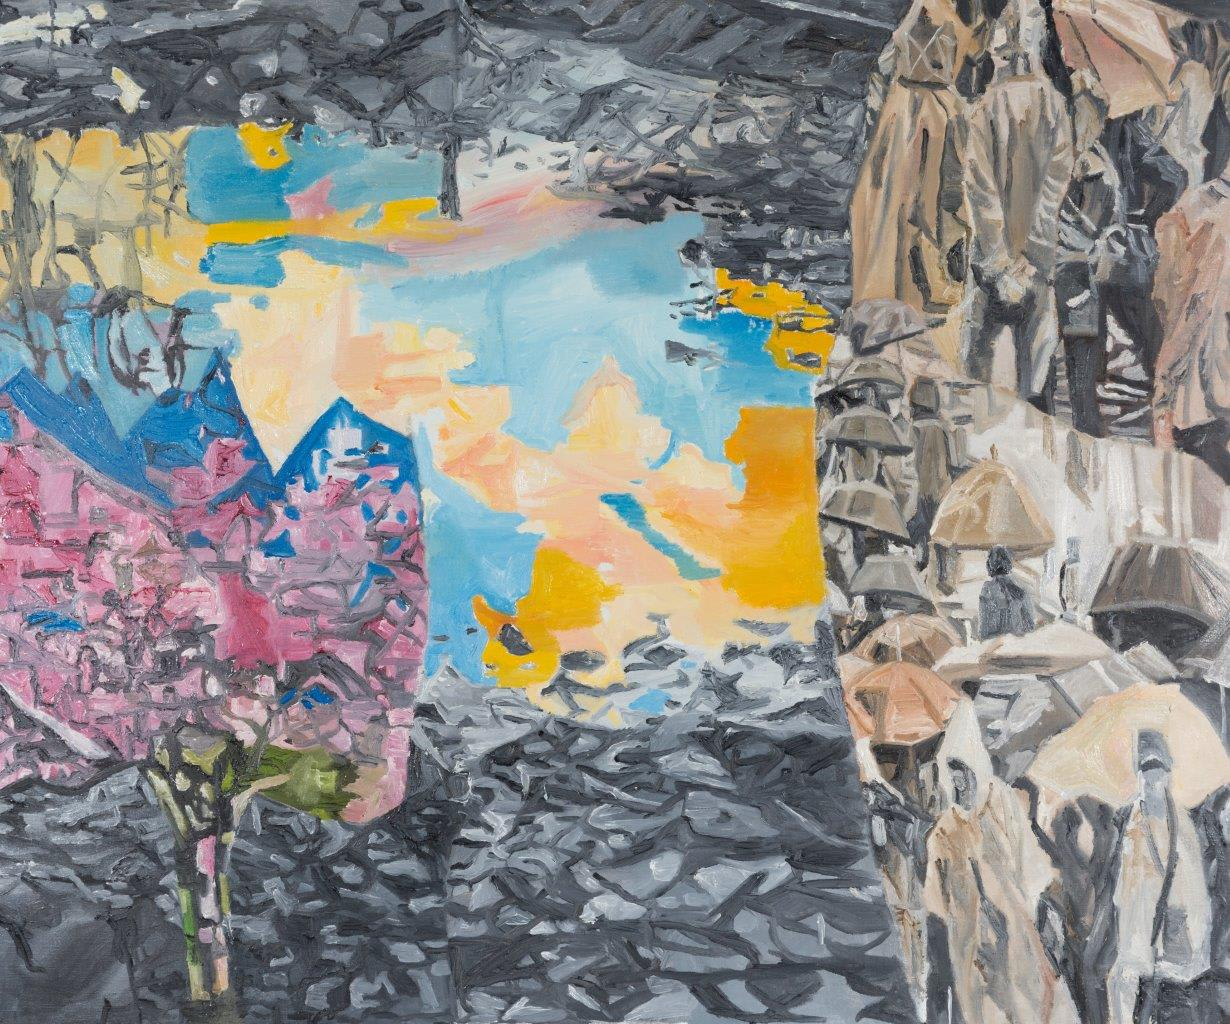 BA Painting and MFA Fine Art graduate, Jasmir Creed, exhibits work in solo show 'Dystopolis'